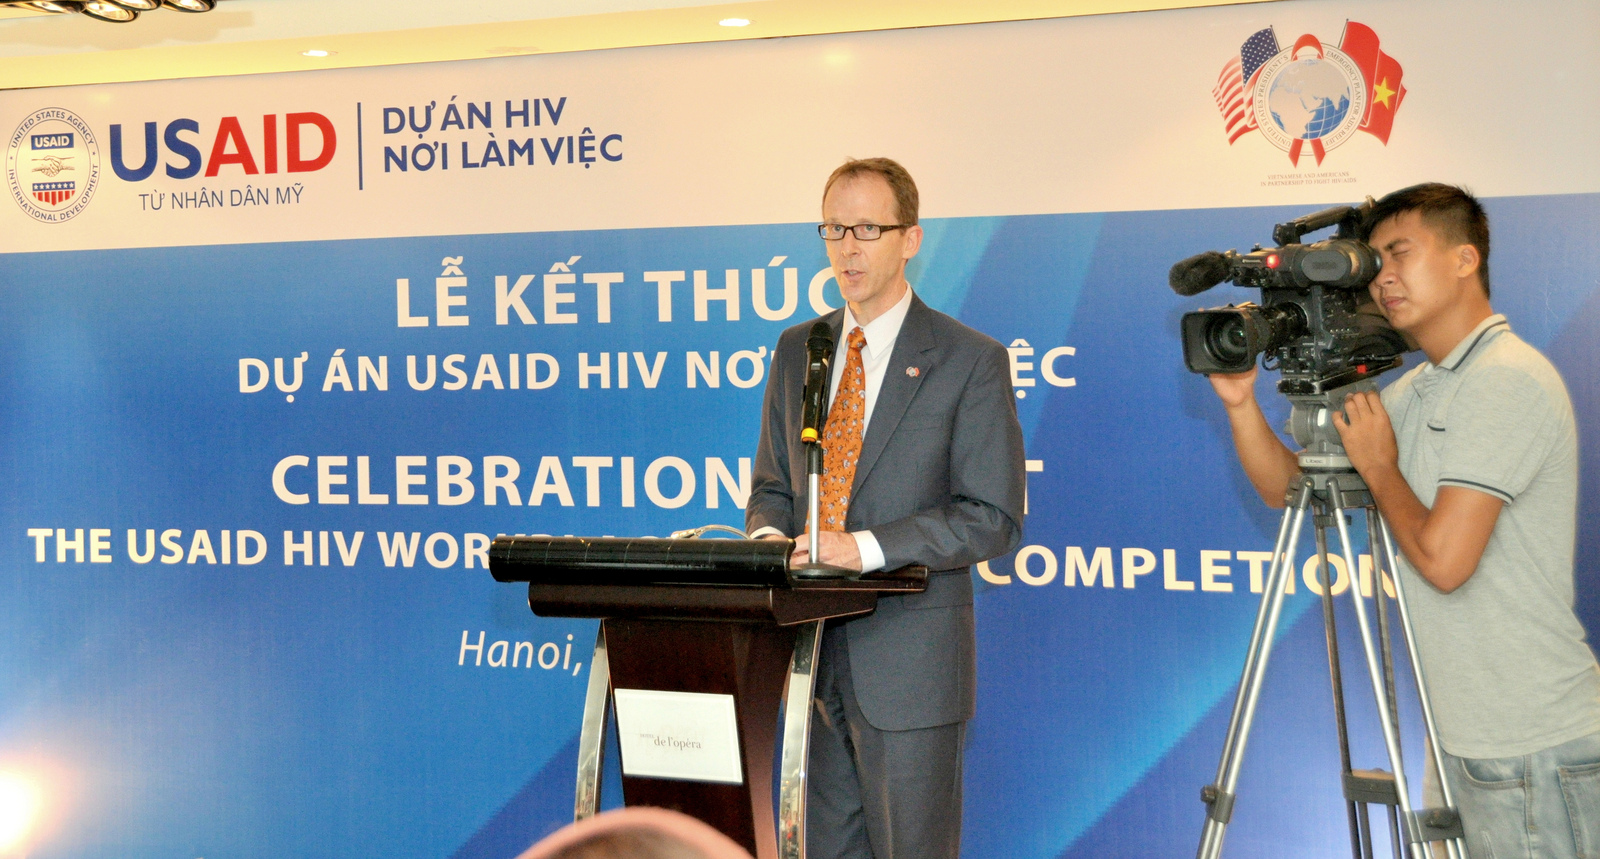 USAID Mission Director Joakim Parker addresses an event for the USAID HIV Workplace Project.